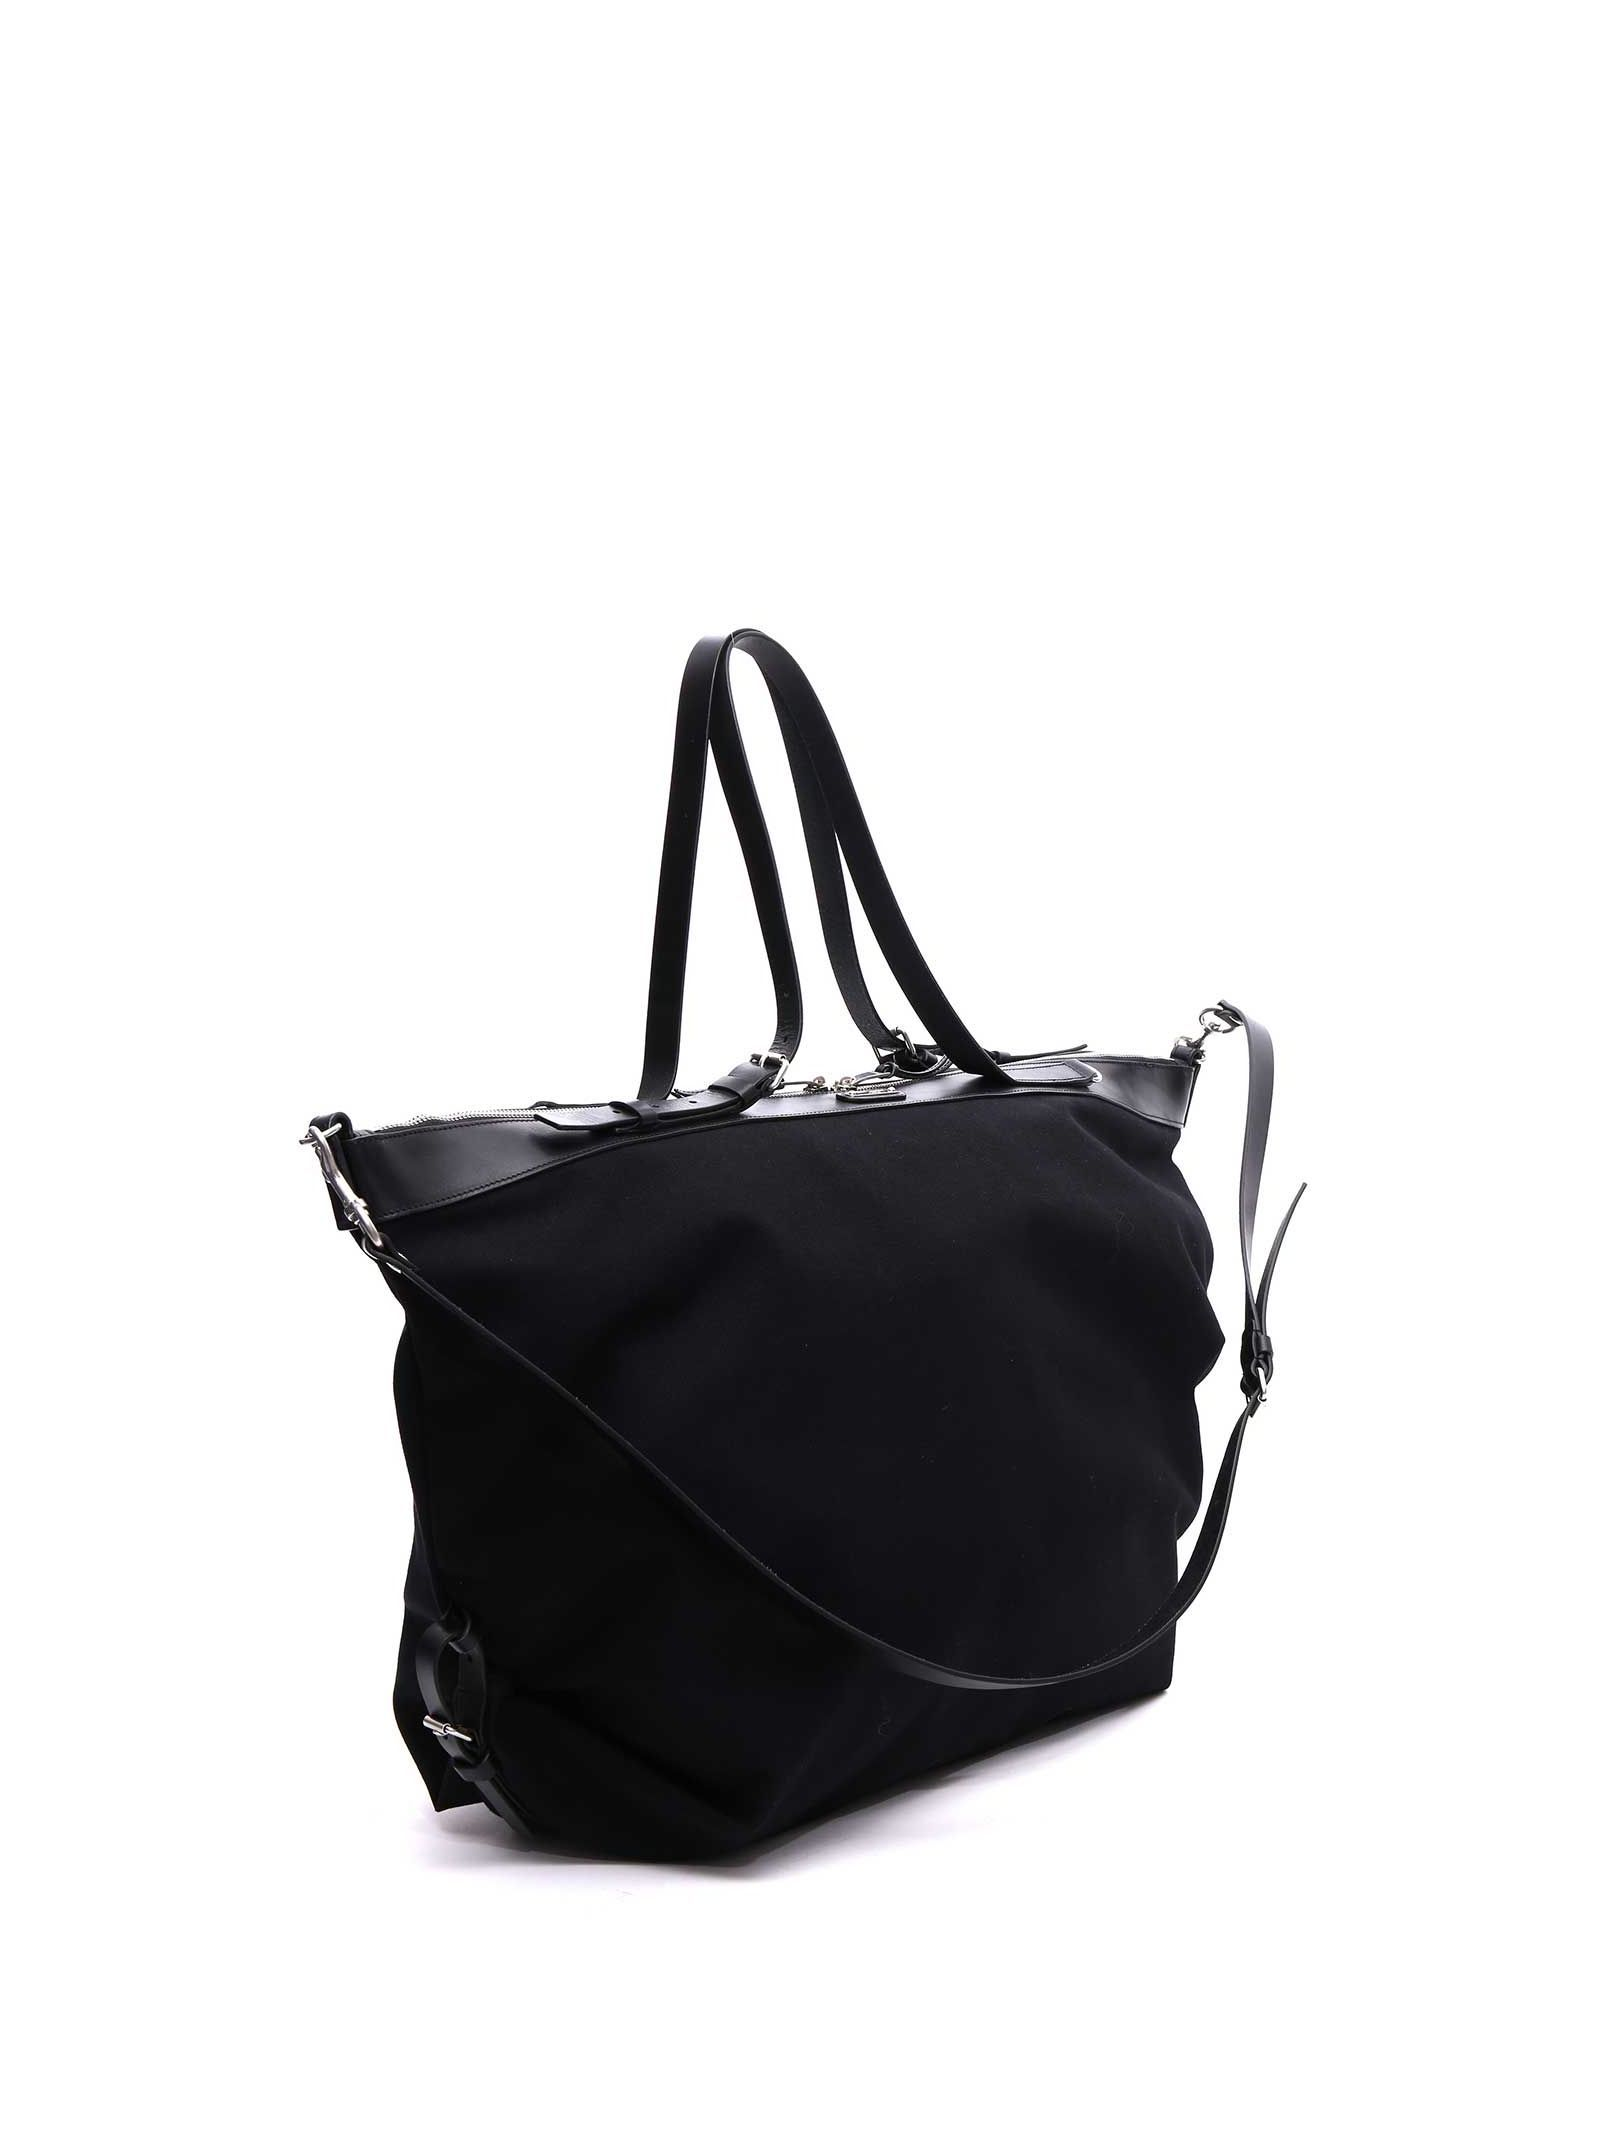 206f2b1ee6 Black canvas Large ID convertible bag from Saint Laurent | Stylish ...